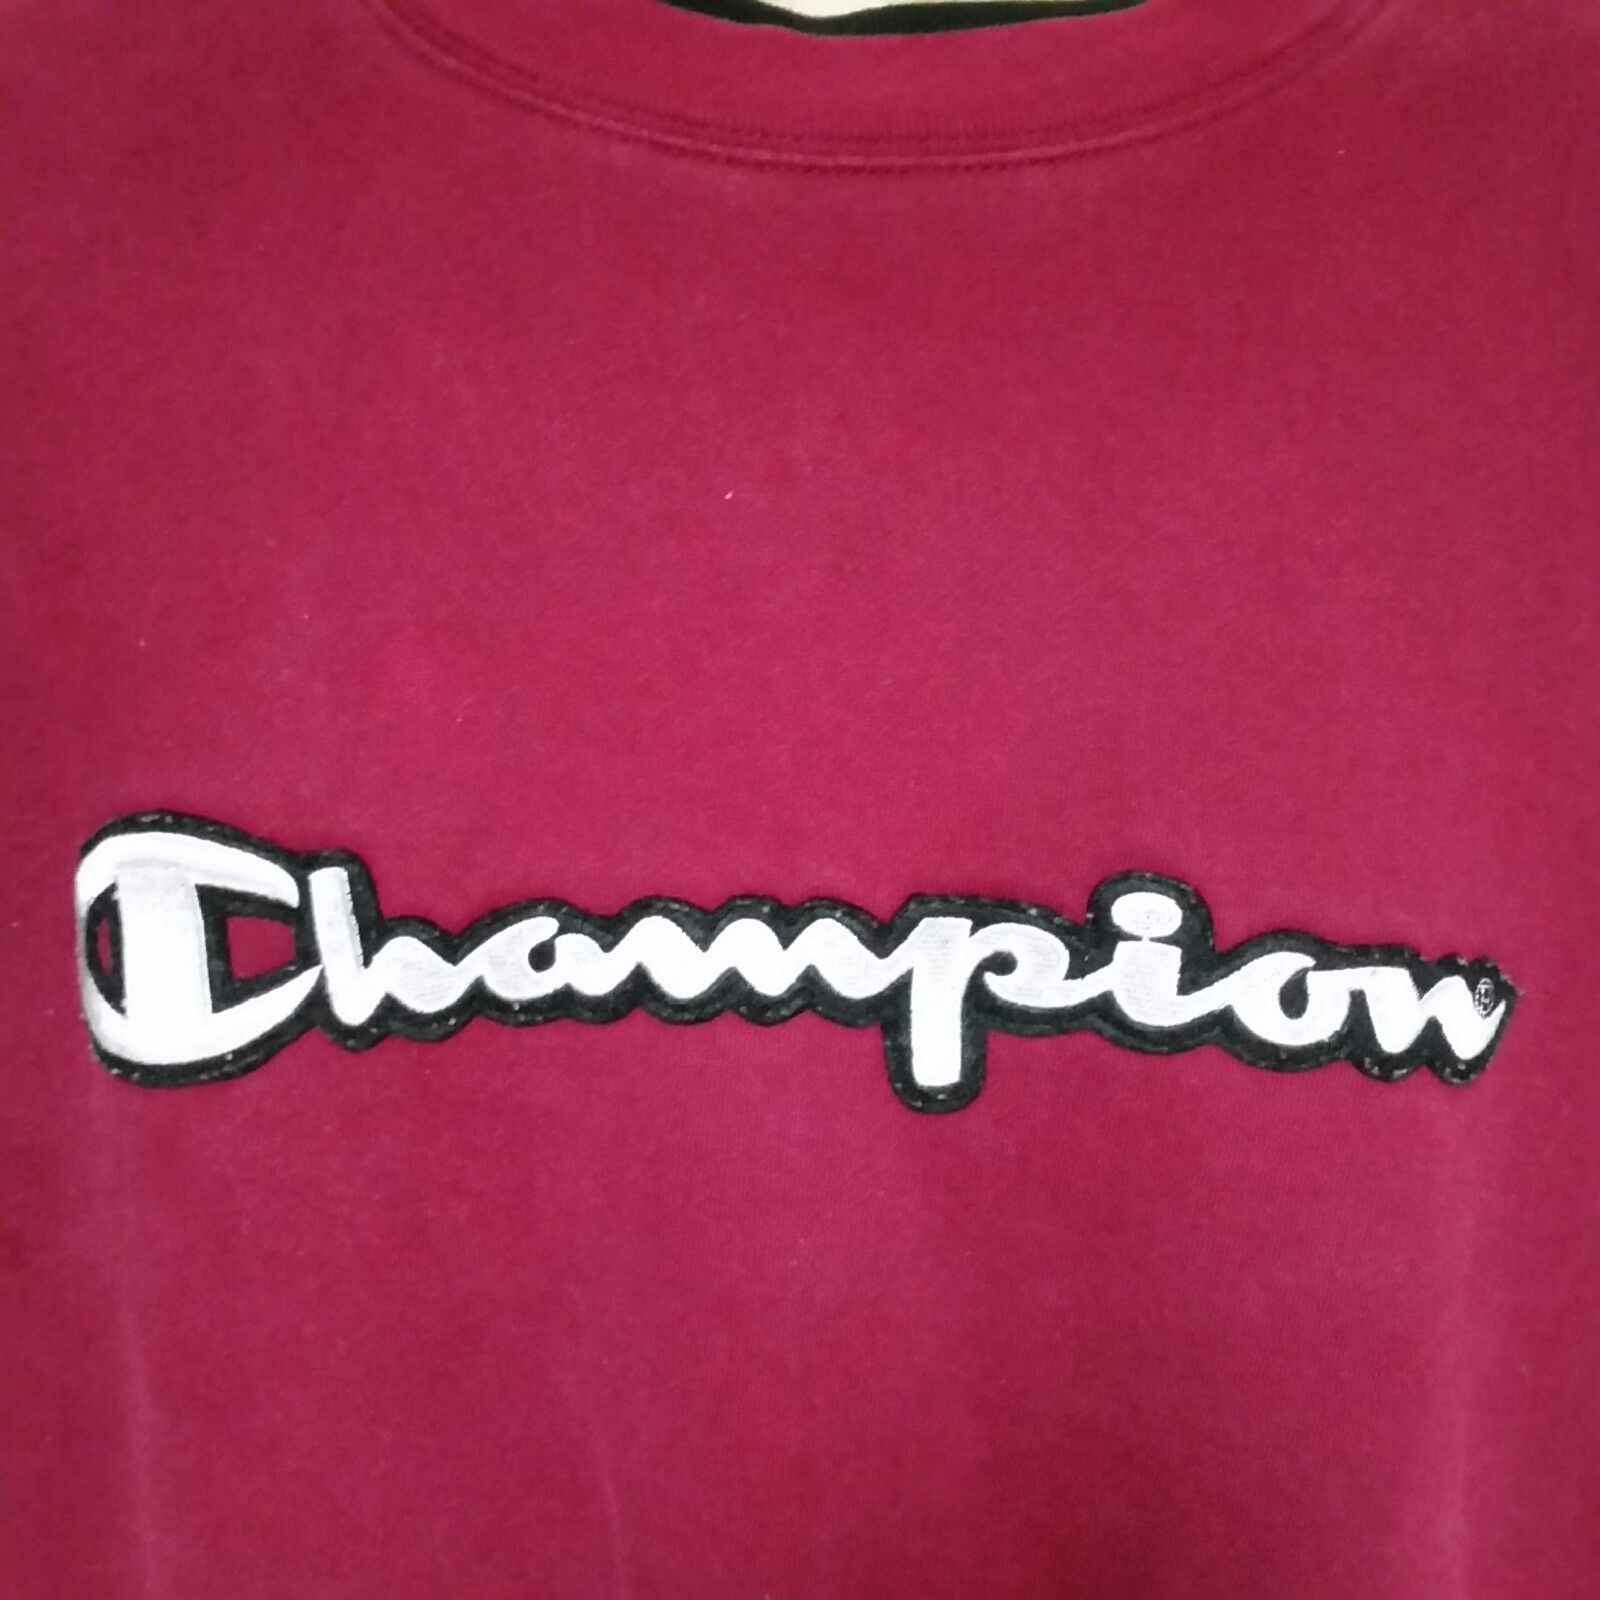 VTG Champion Sweatshirt Pullover Spell Out Embroidered Sportswear 90s Jumper XL